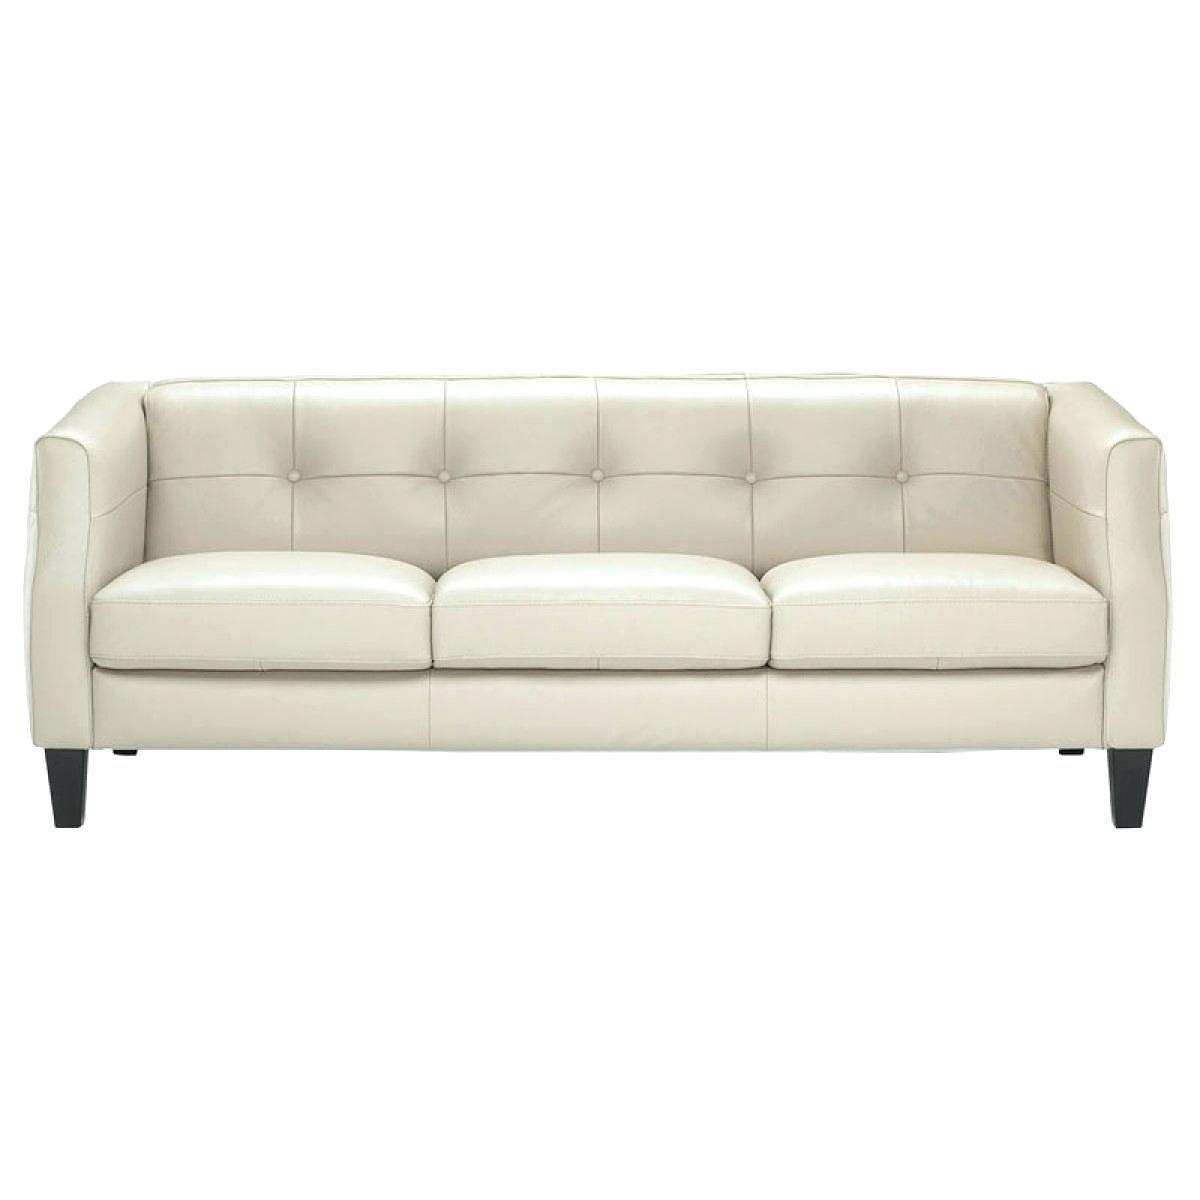 reupholster sofa nyc media table best 25+ bed repair ideas on pinterest   how to ...